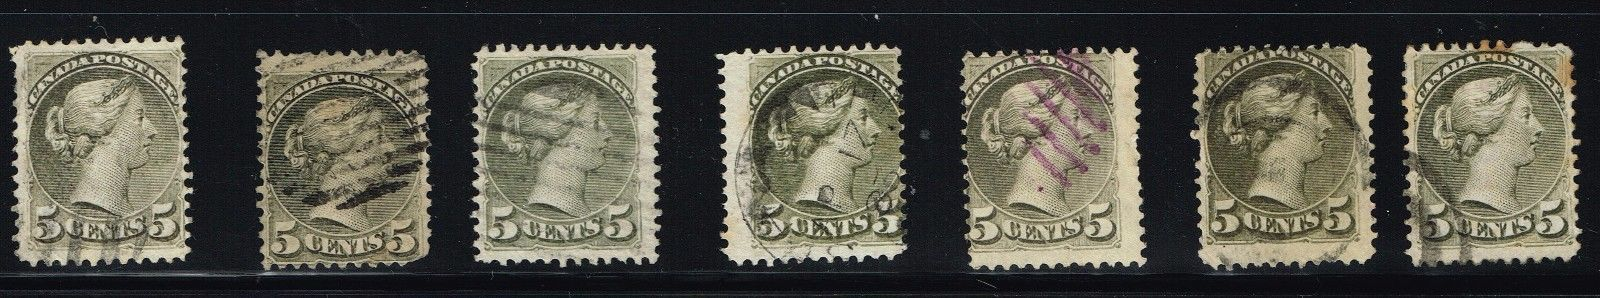 CANADA SMALL QUEEN 38 F-VF (OCR6,8